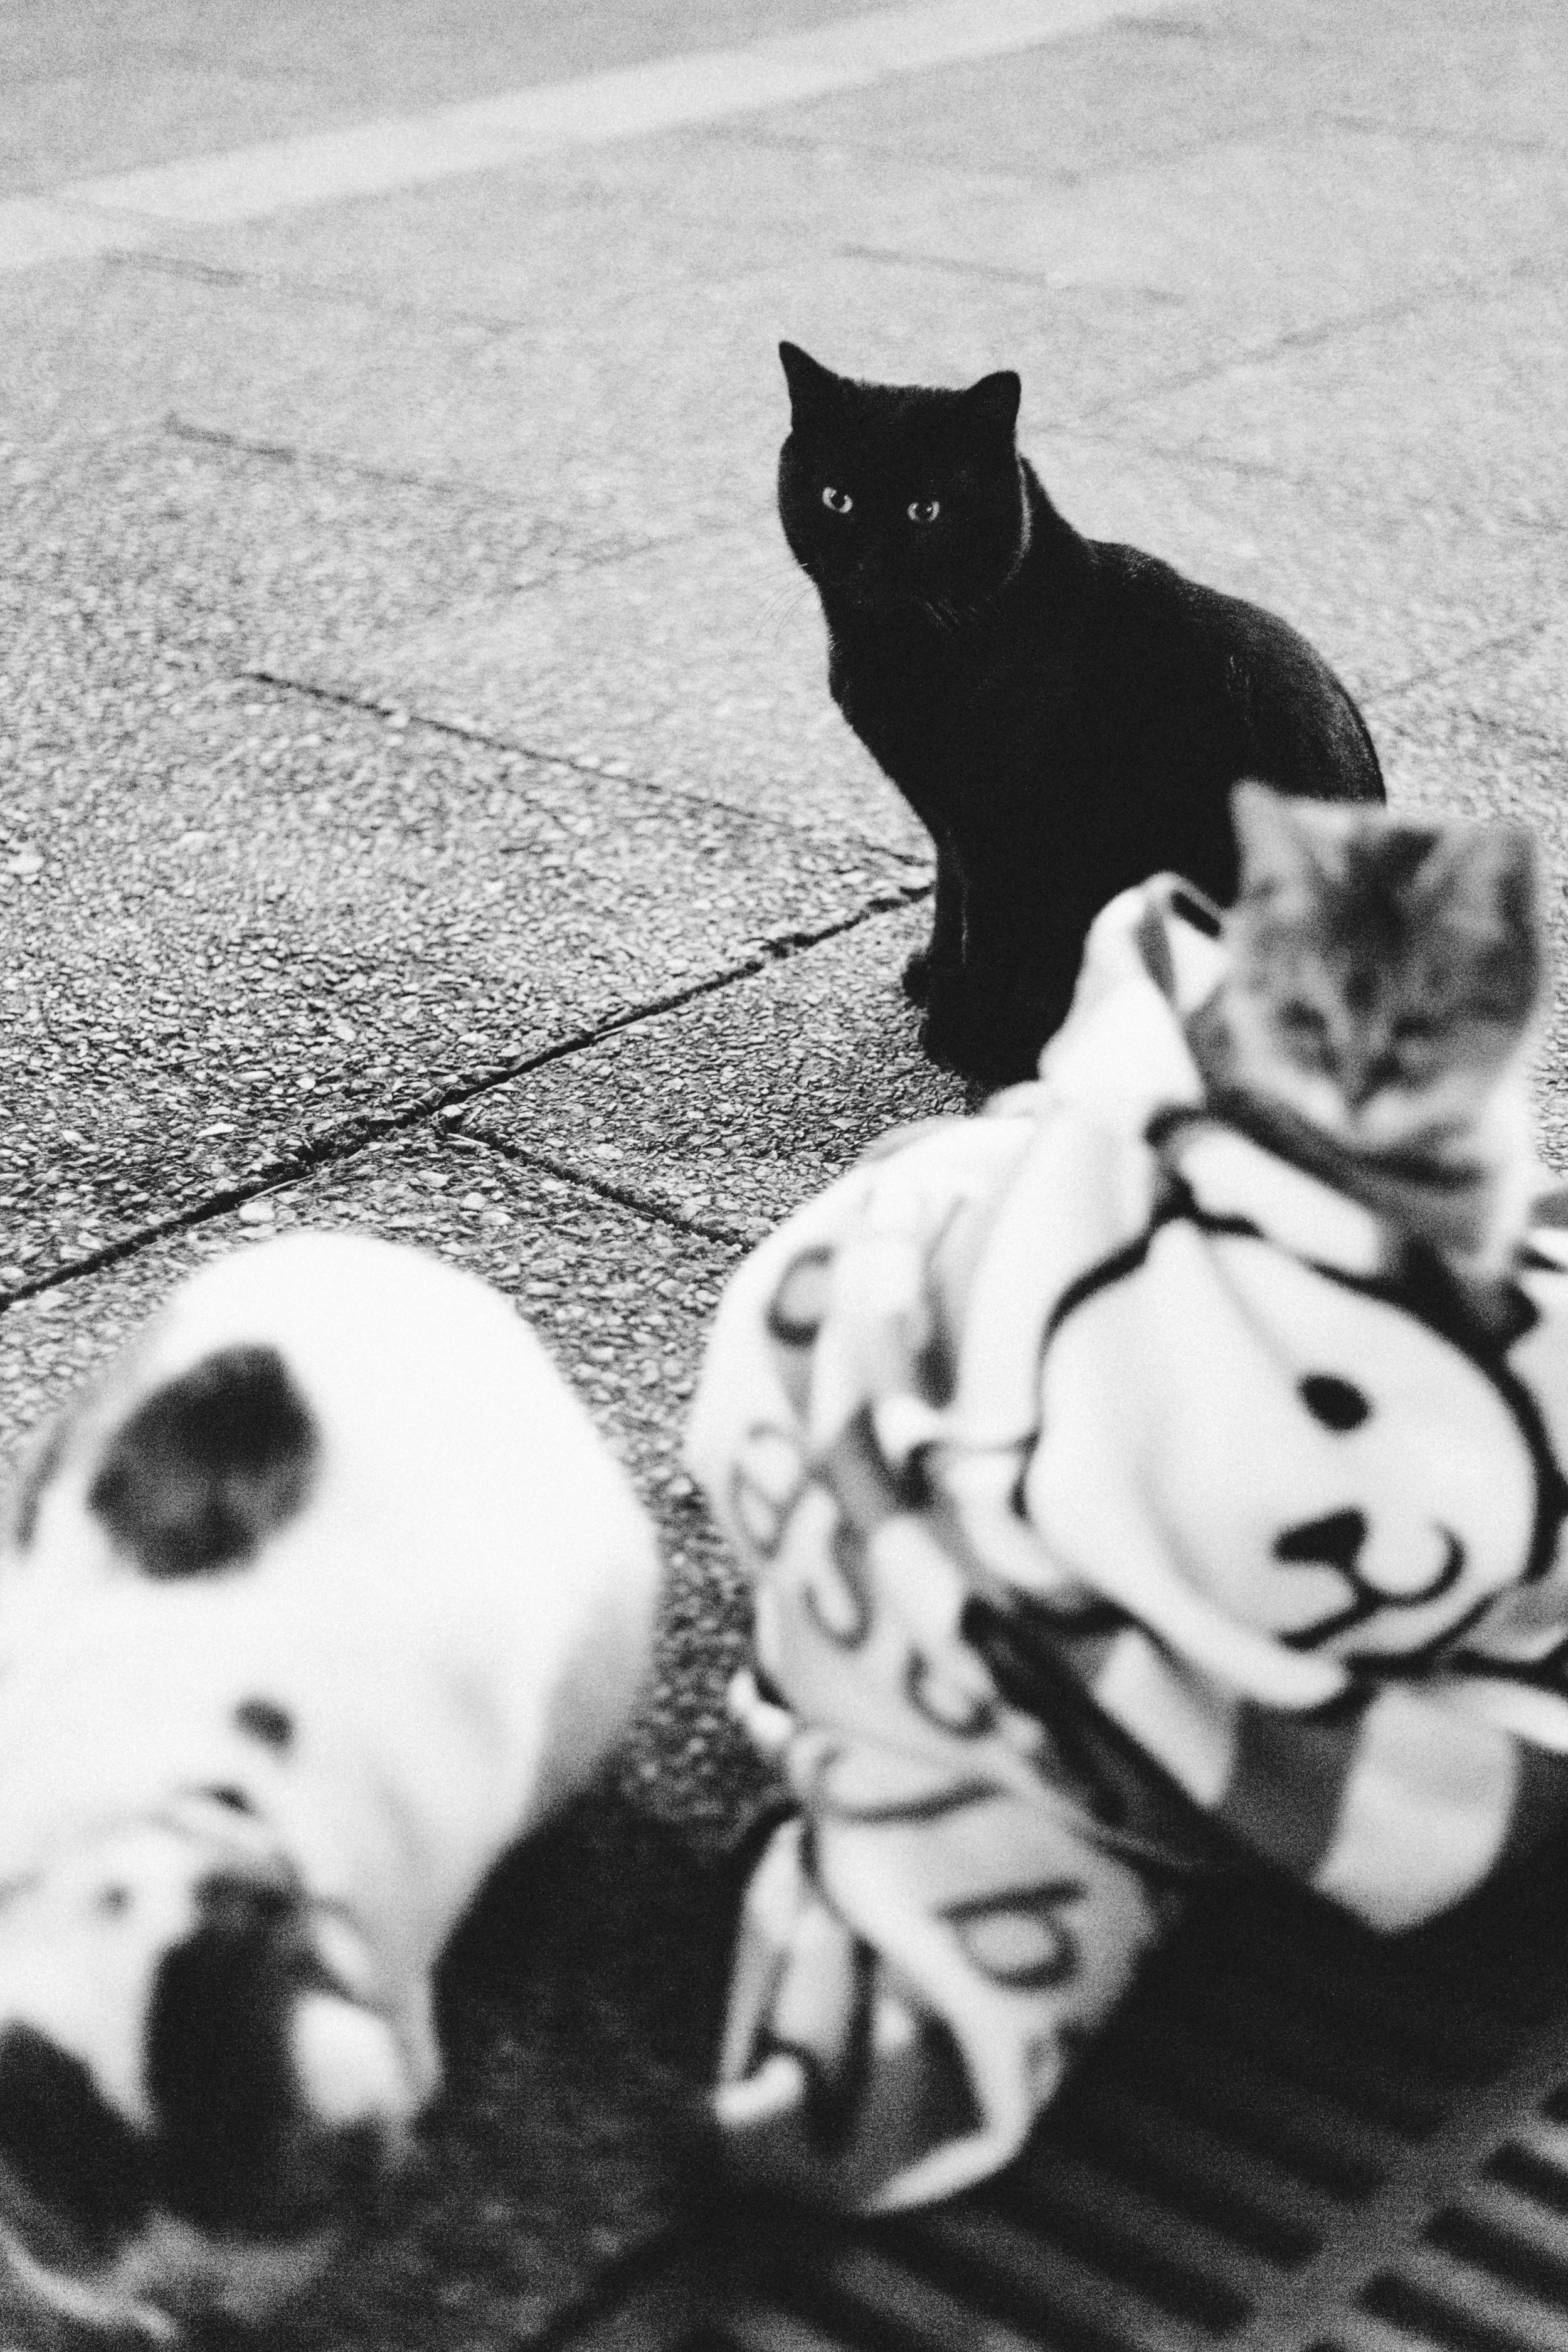 Some, such as this black cat, unable to find a human to snuggle to.